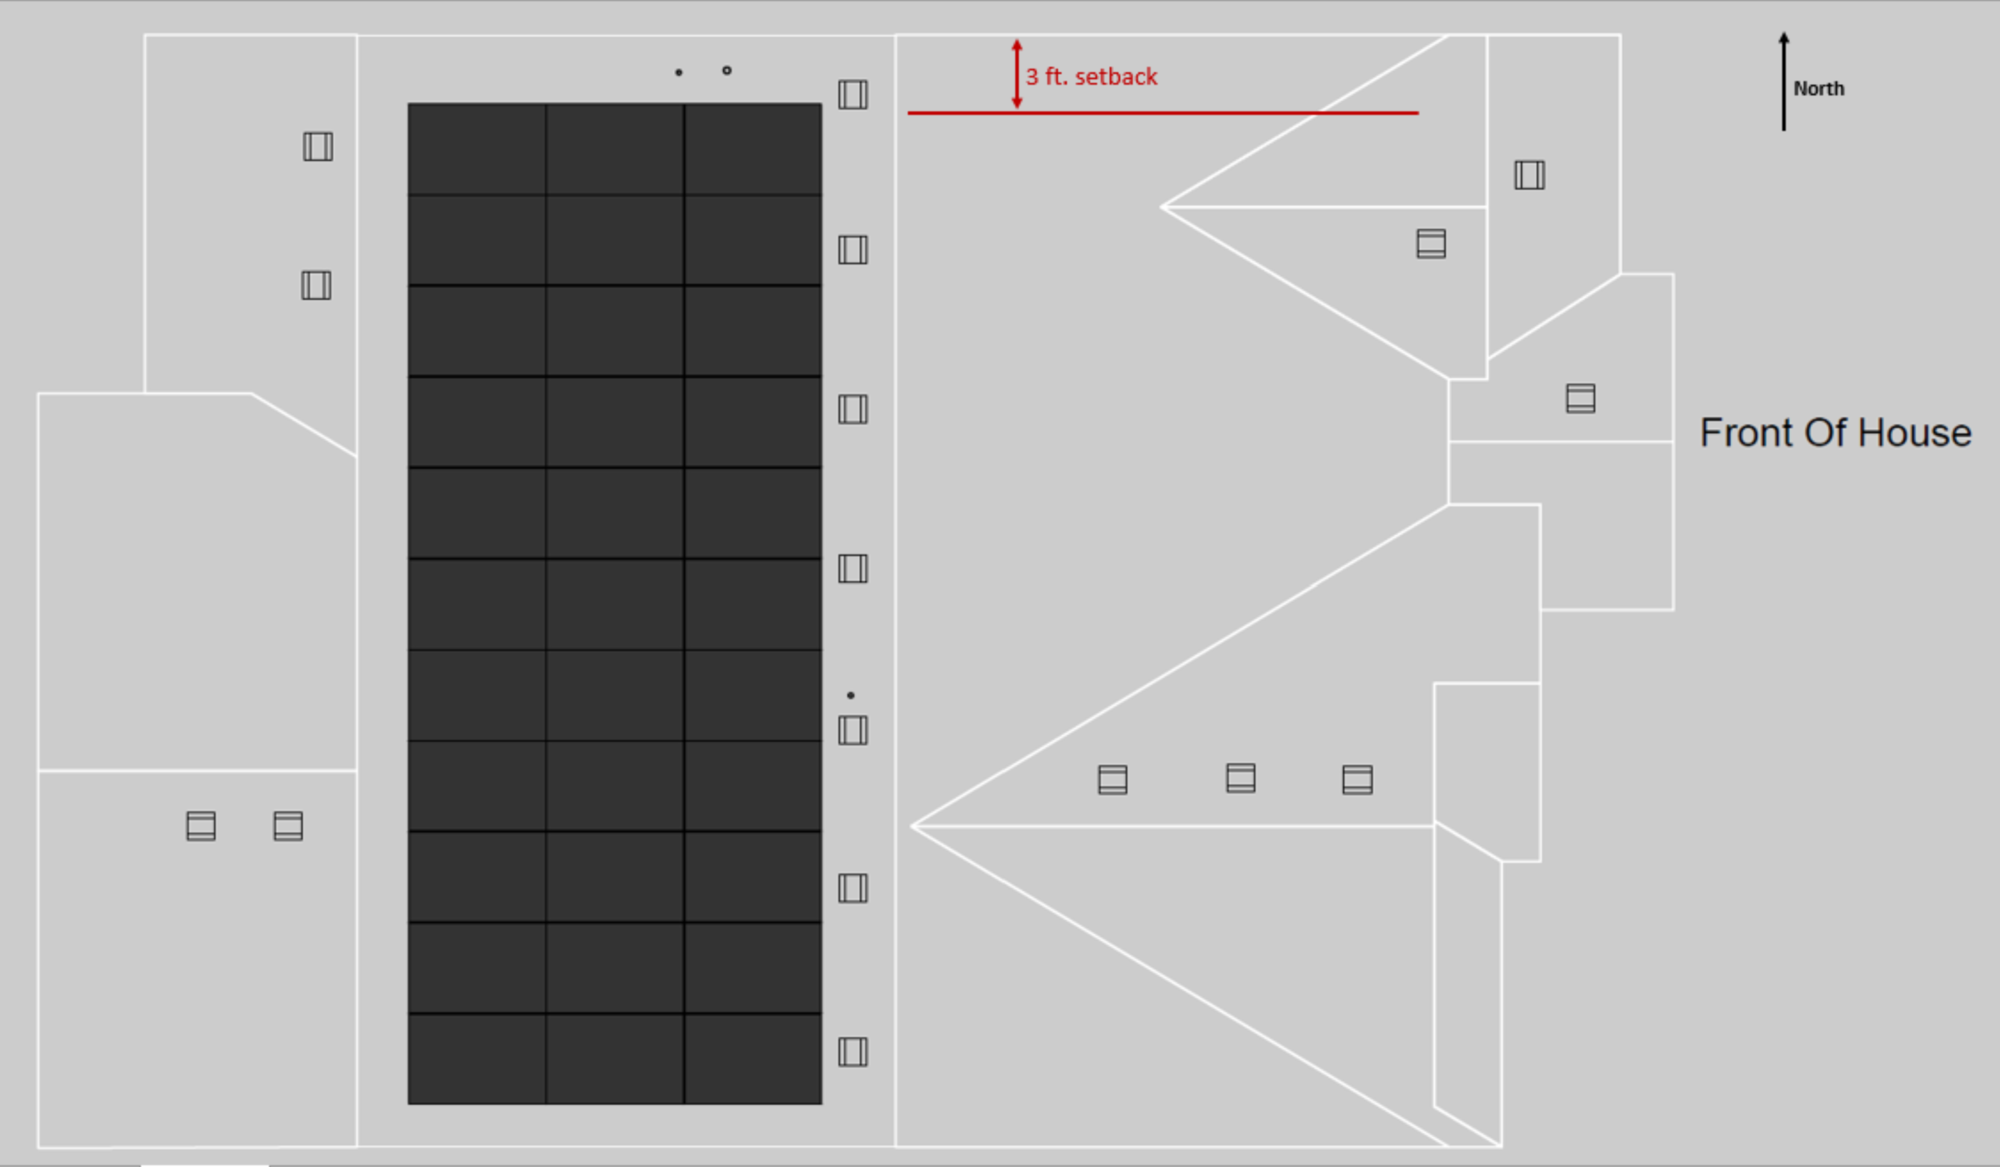 layout final.png